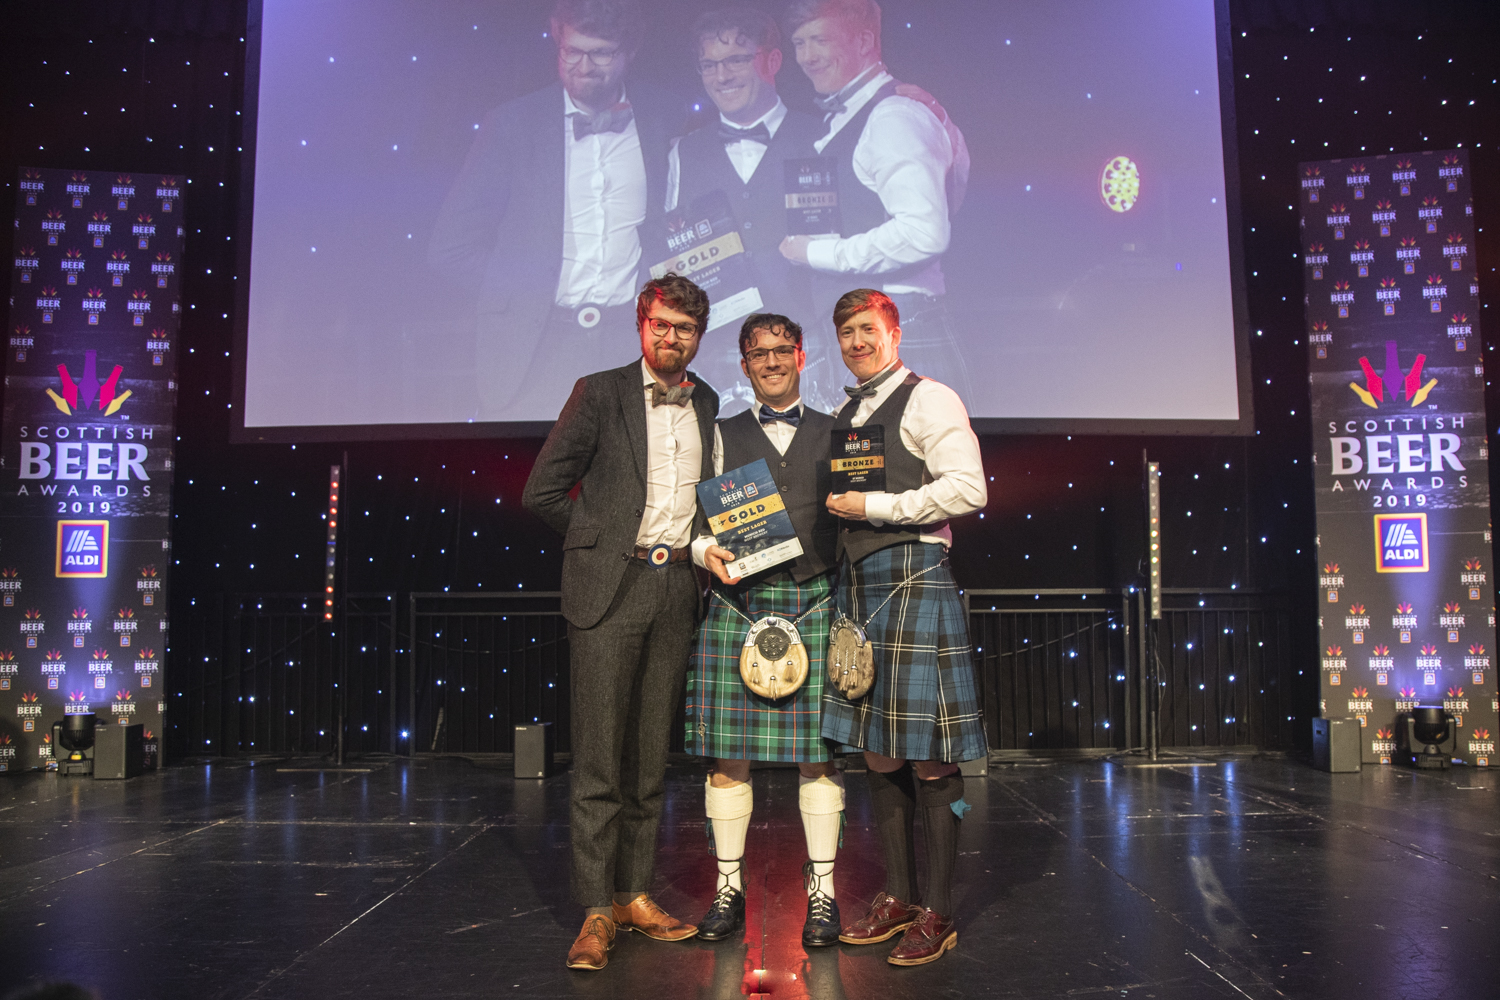 Munich Red wins Best Scottish Lager 2019